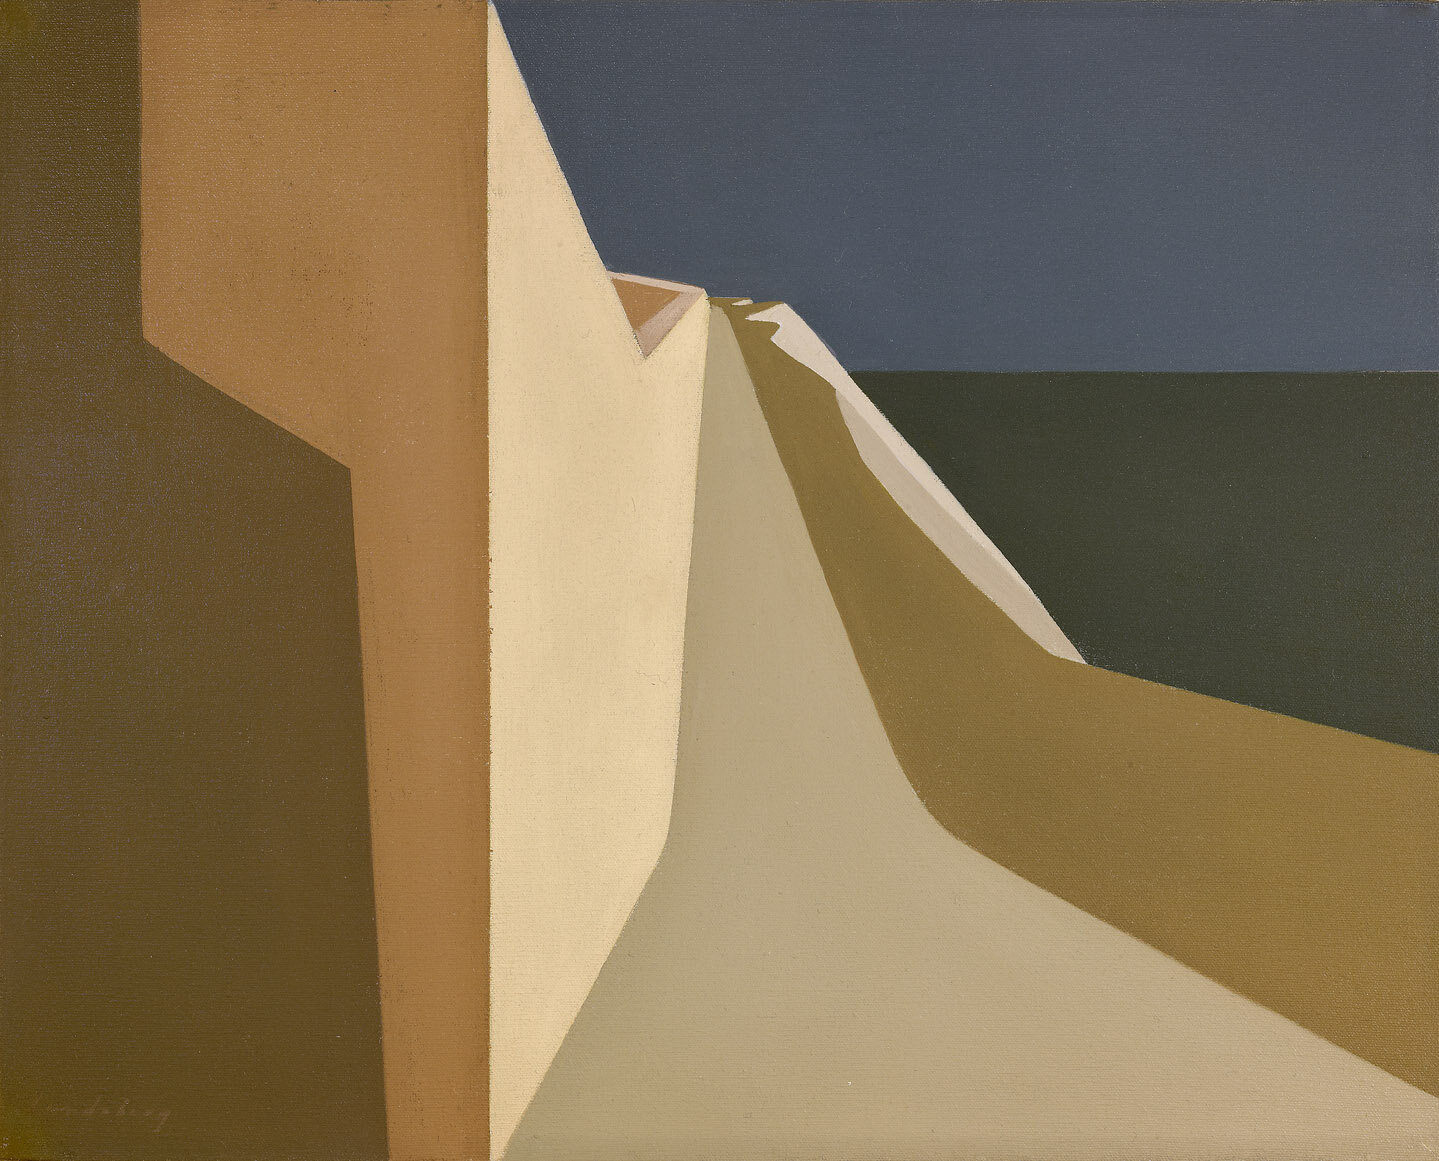 Light Path to the Sea , 1959  oil on canvas 16 x 20 inches; 40.6 x 50.8 centimeters